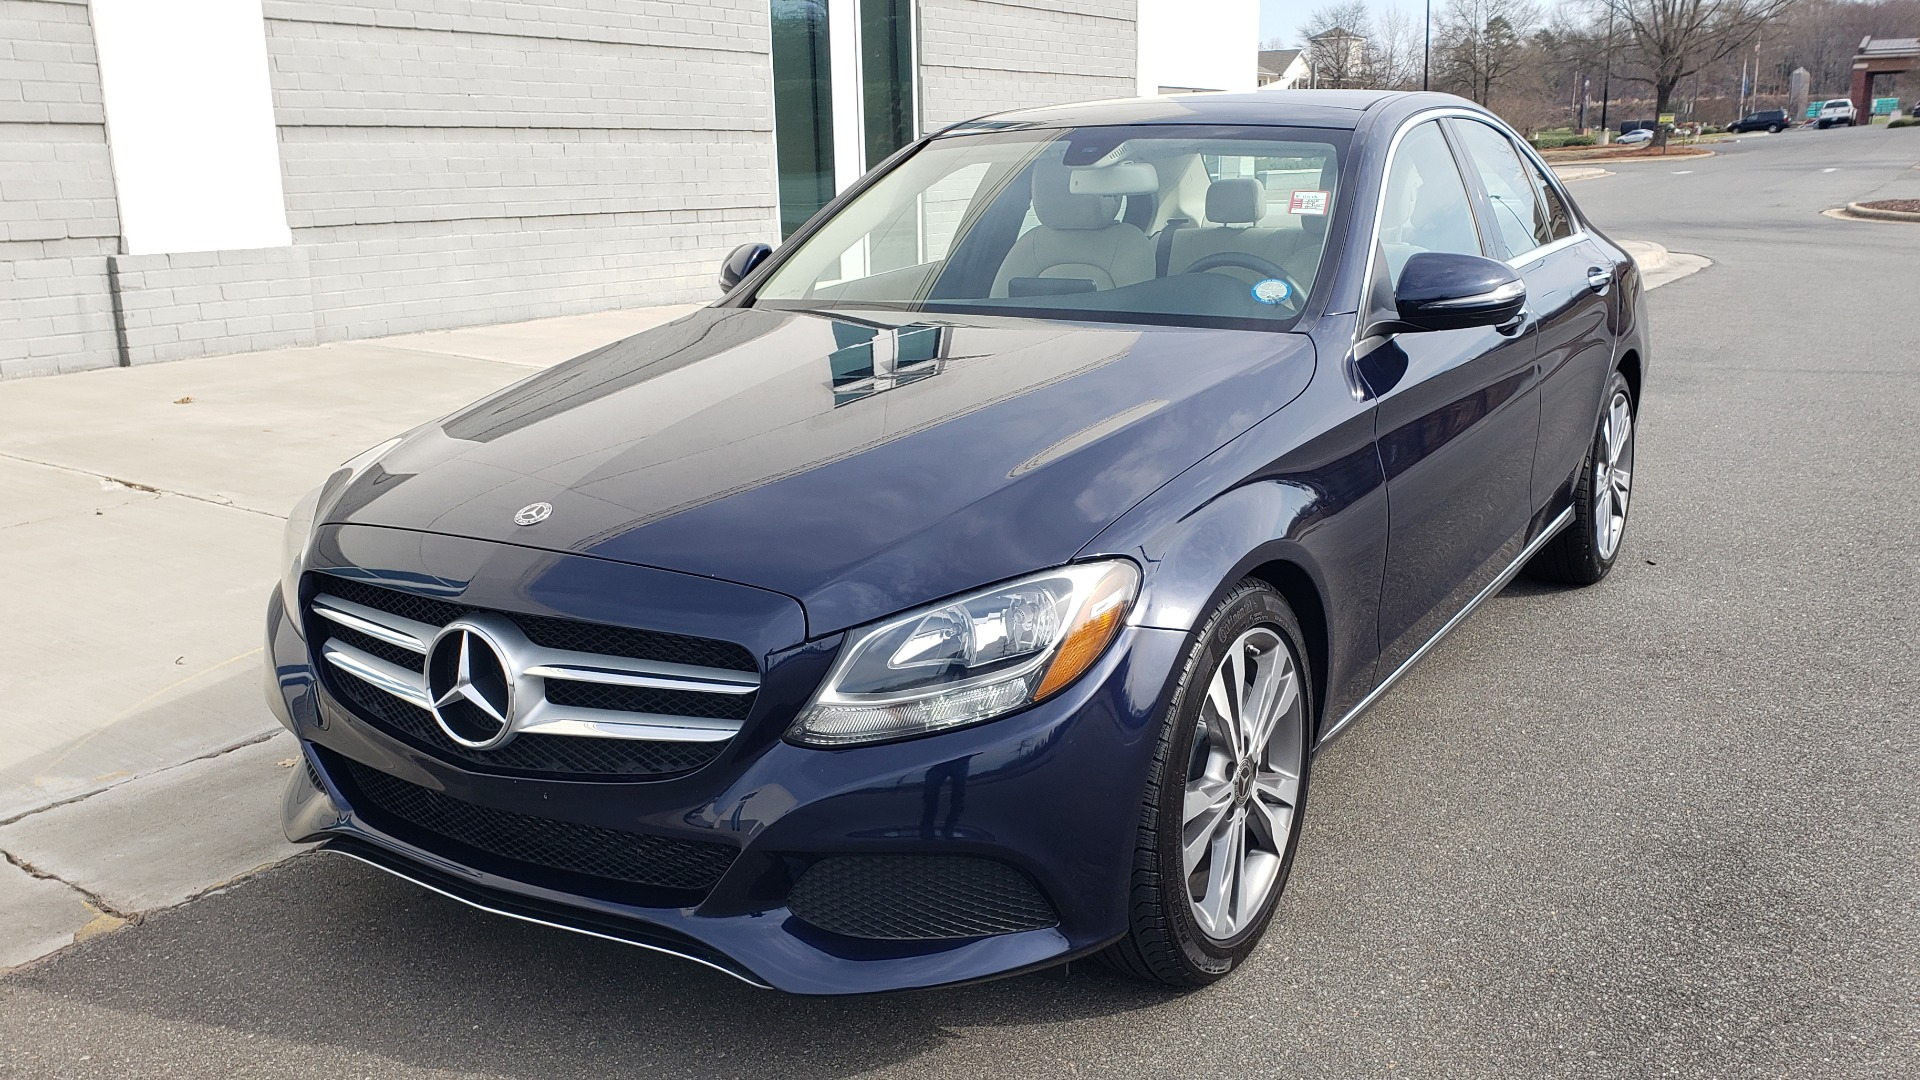 Used 2018 Mercedes-Benz C-CLASS C 300 PREMIUM / PANO-ROOF / HTD STST / APPL CARPLAY / REARVIEW for sale Sold at Formula Imports in Charlotte NC 28227 3